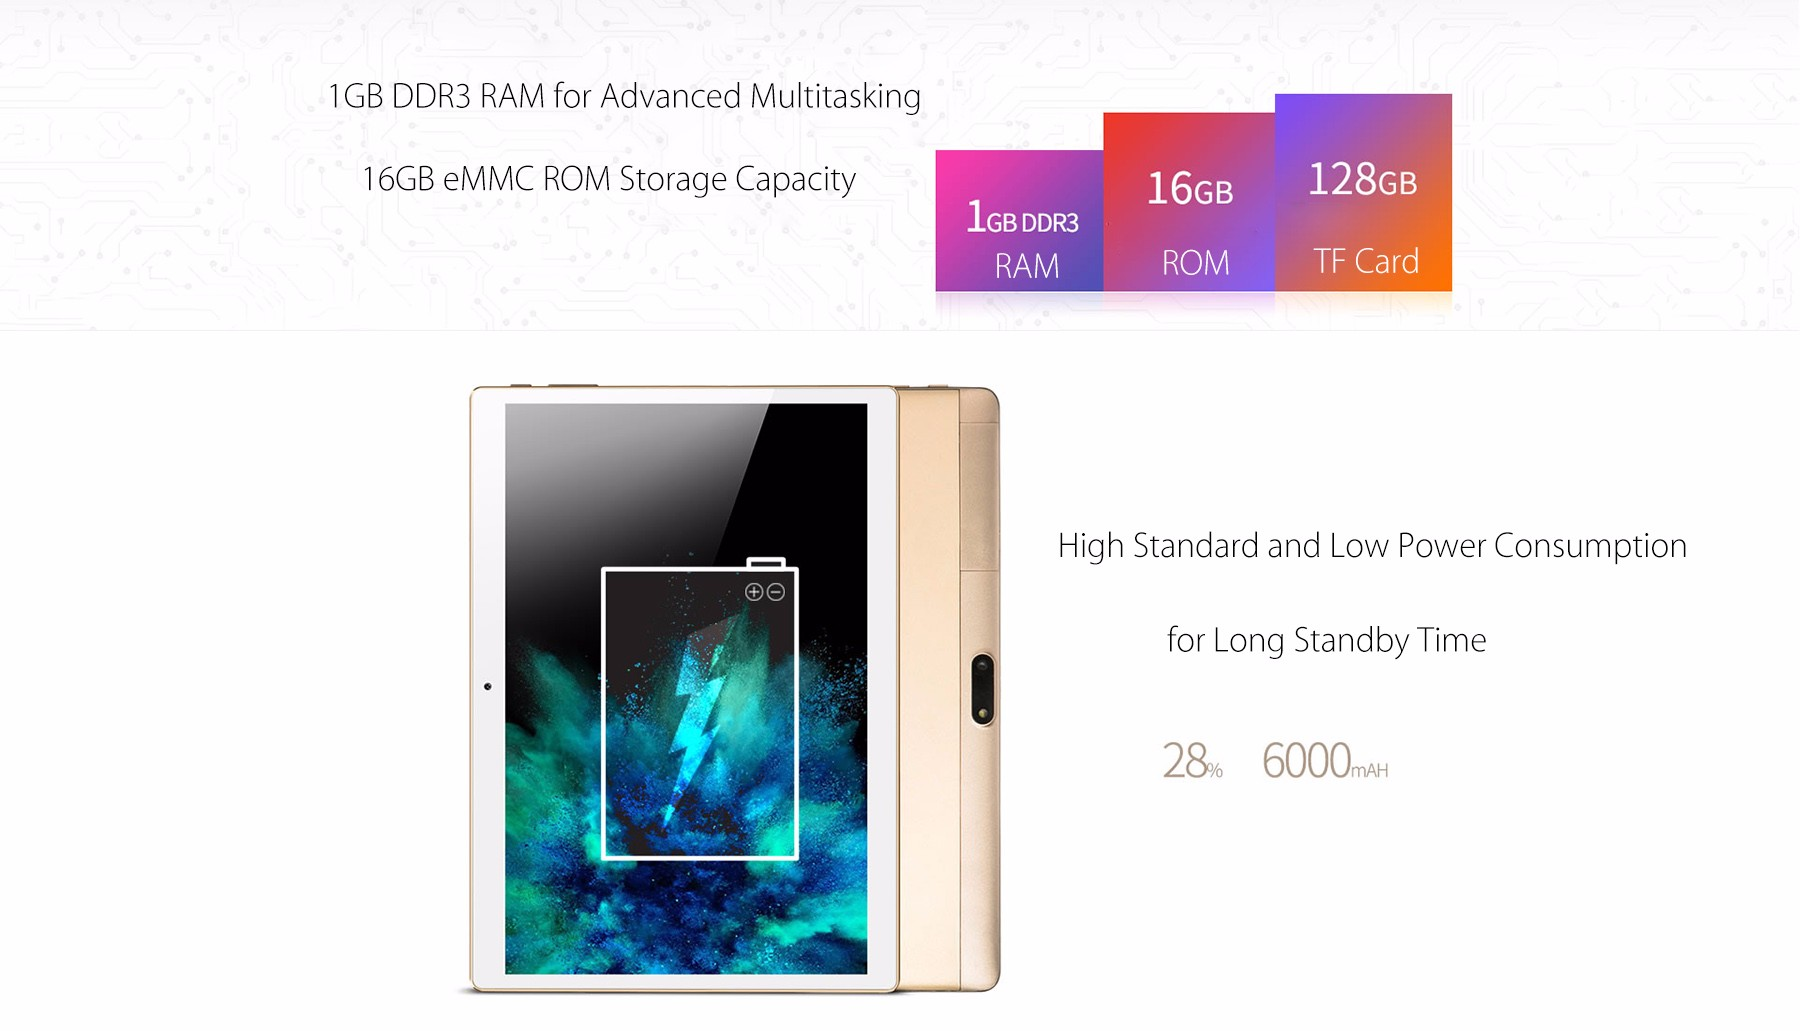 Onda V10 4G Phablet 10.1 inch IPS Screen Android 5.1 MTK6735 1.3GHz Quad Core 1GB RAM 16GB eMMC Dual Cameras GPS FM Bluetooth 4.0